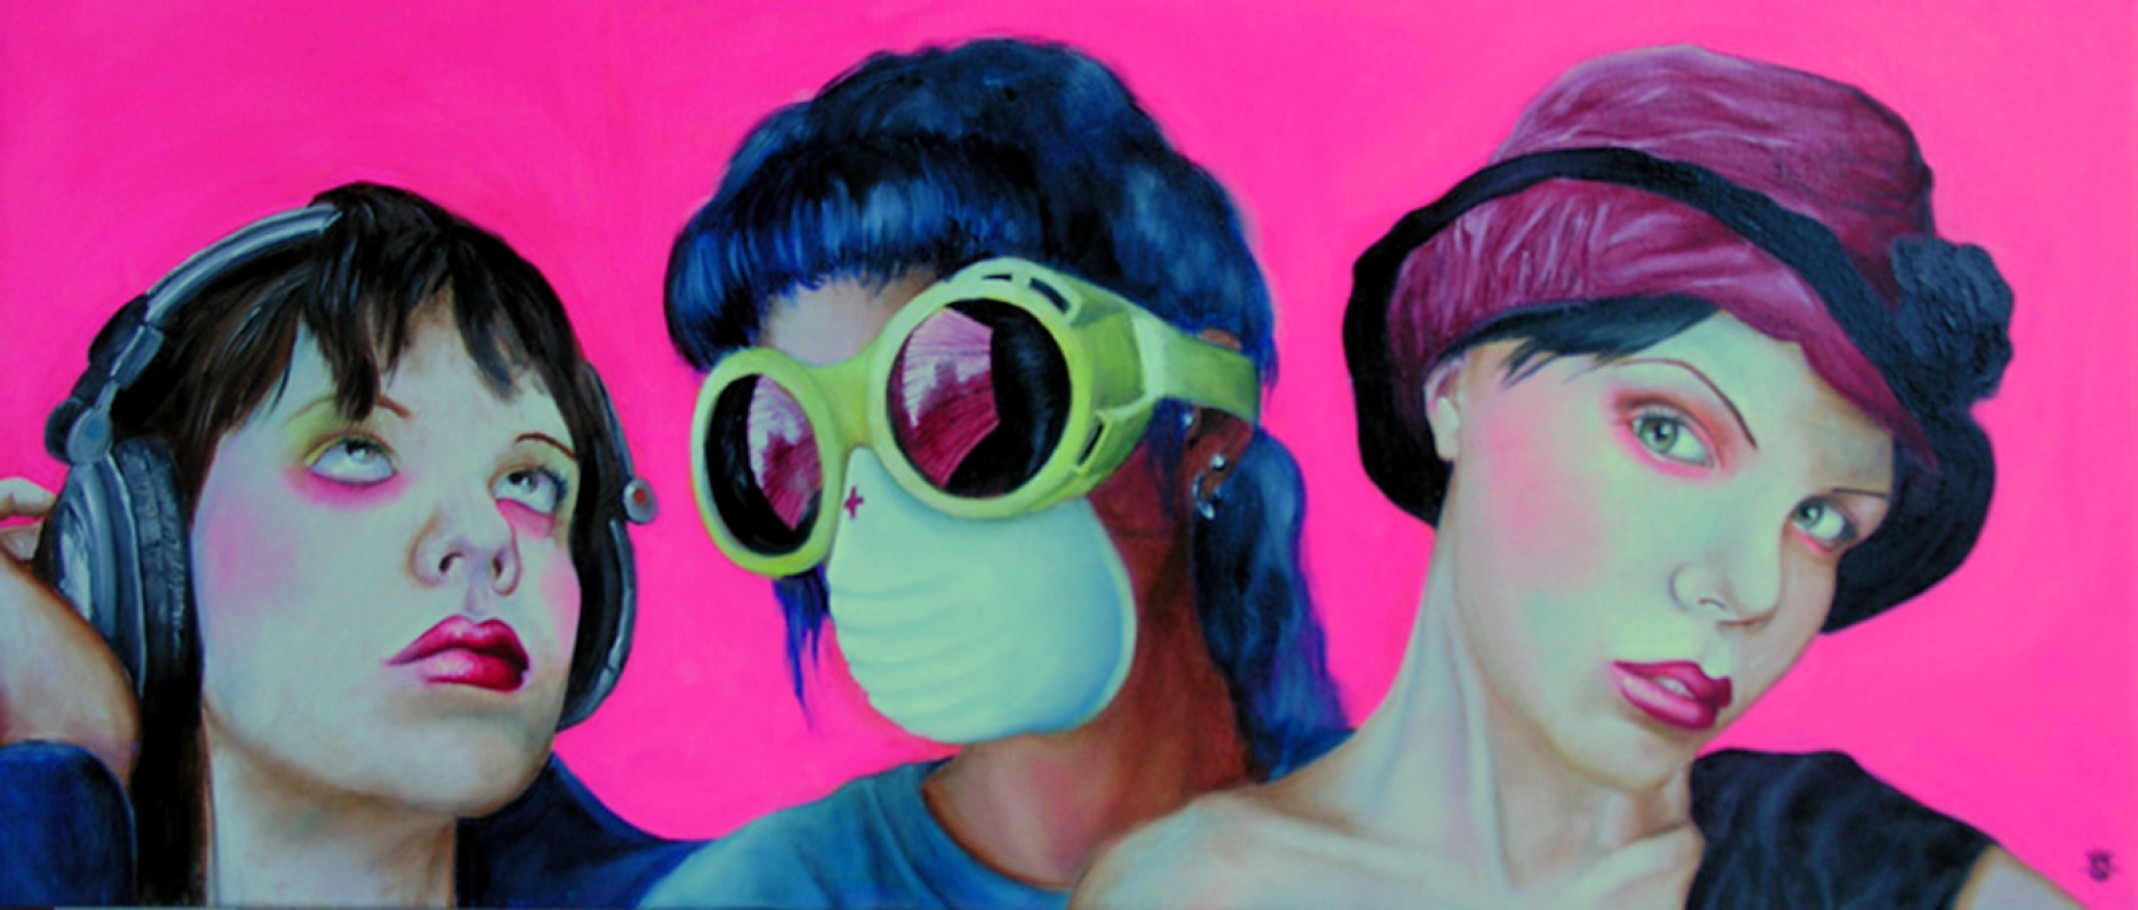 Cyber girls 50x100 cm oil on canvas 2005